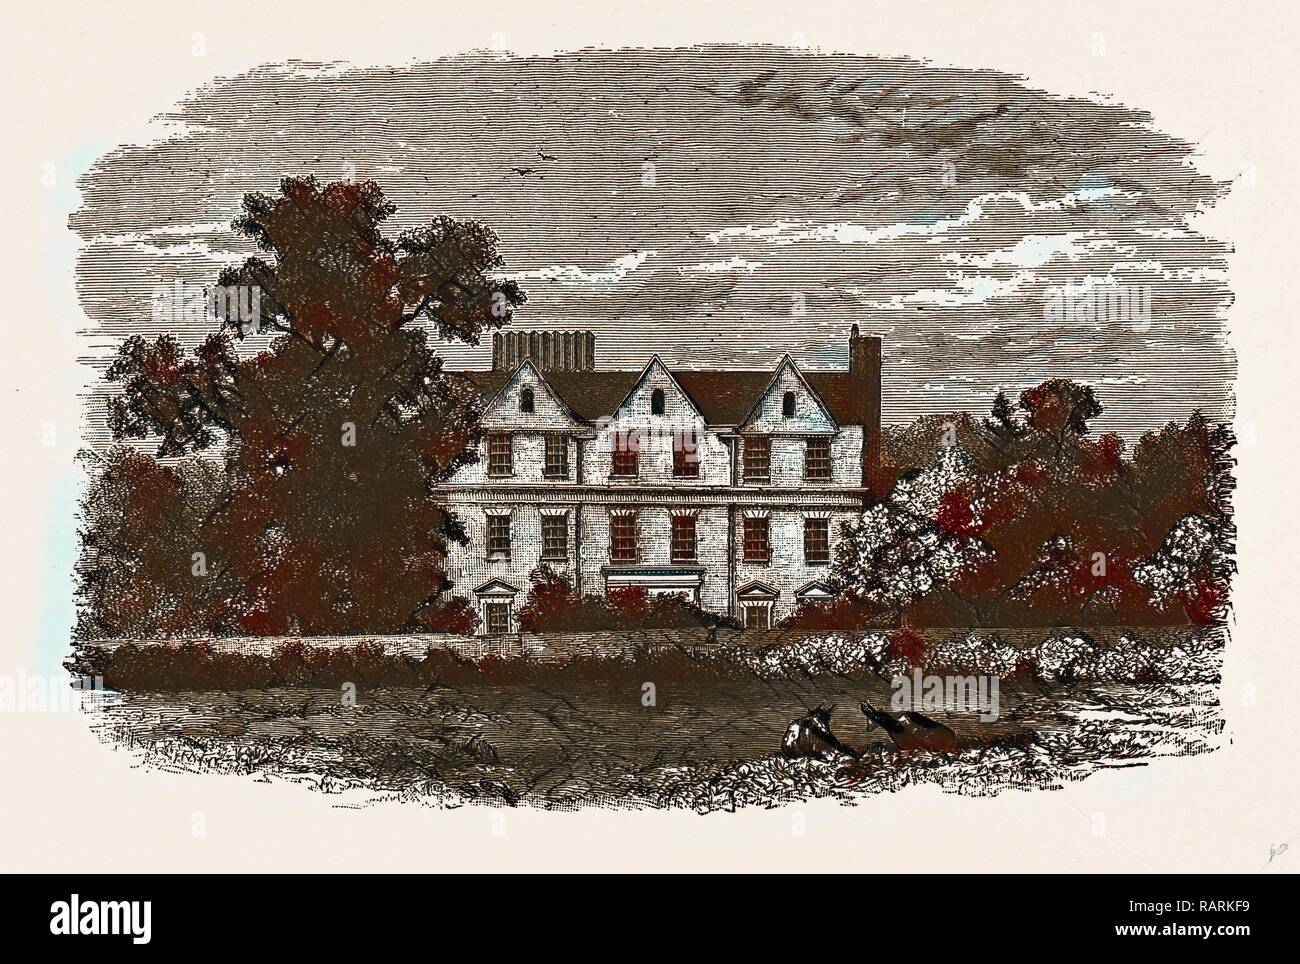 BOSTON HOUSE, from an old Print of 1799. Reimagined by Gibon. Classic art with a modern twist reimagined - Stock Image